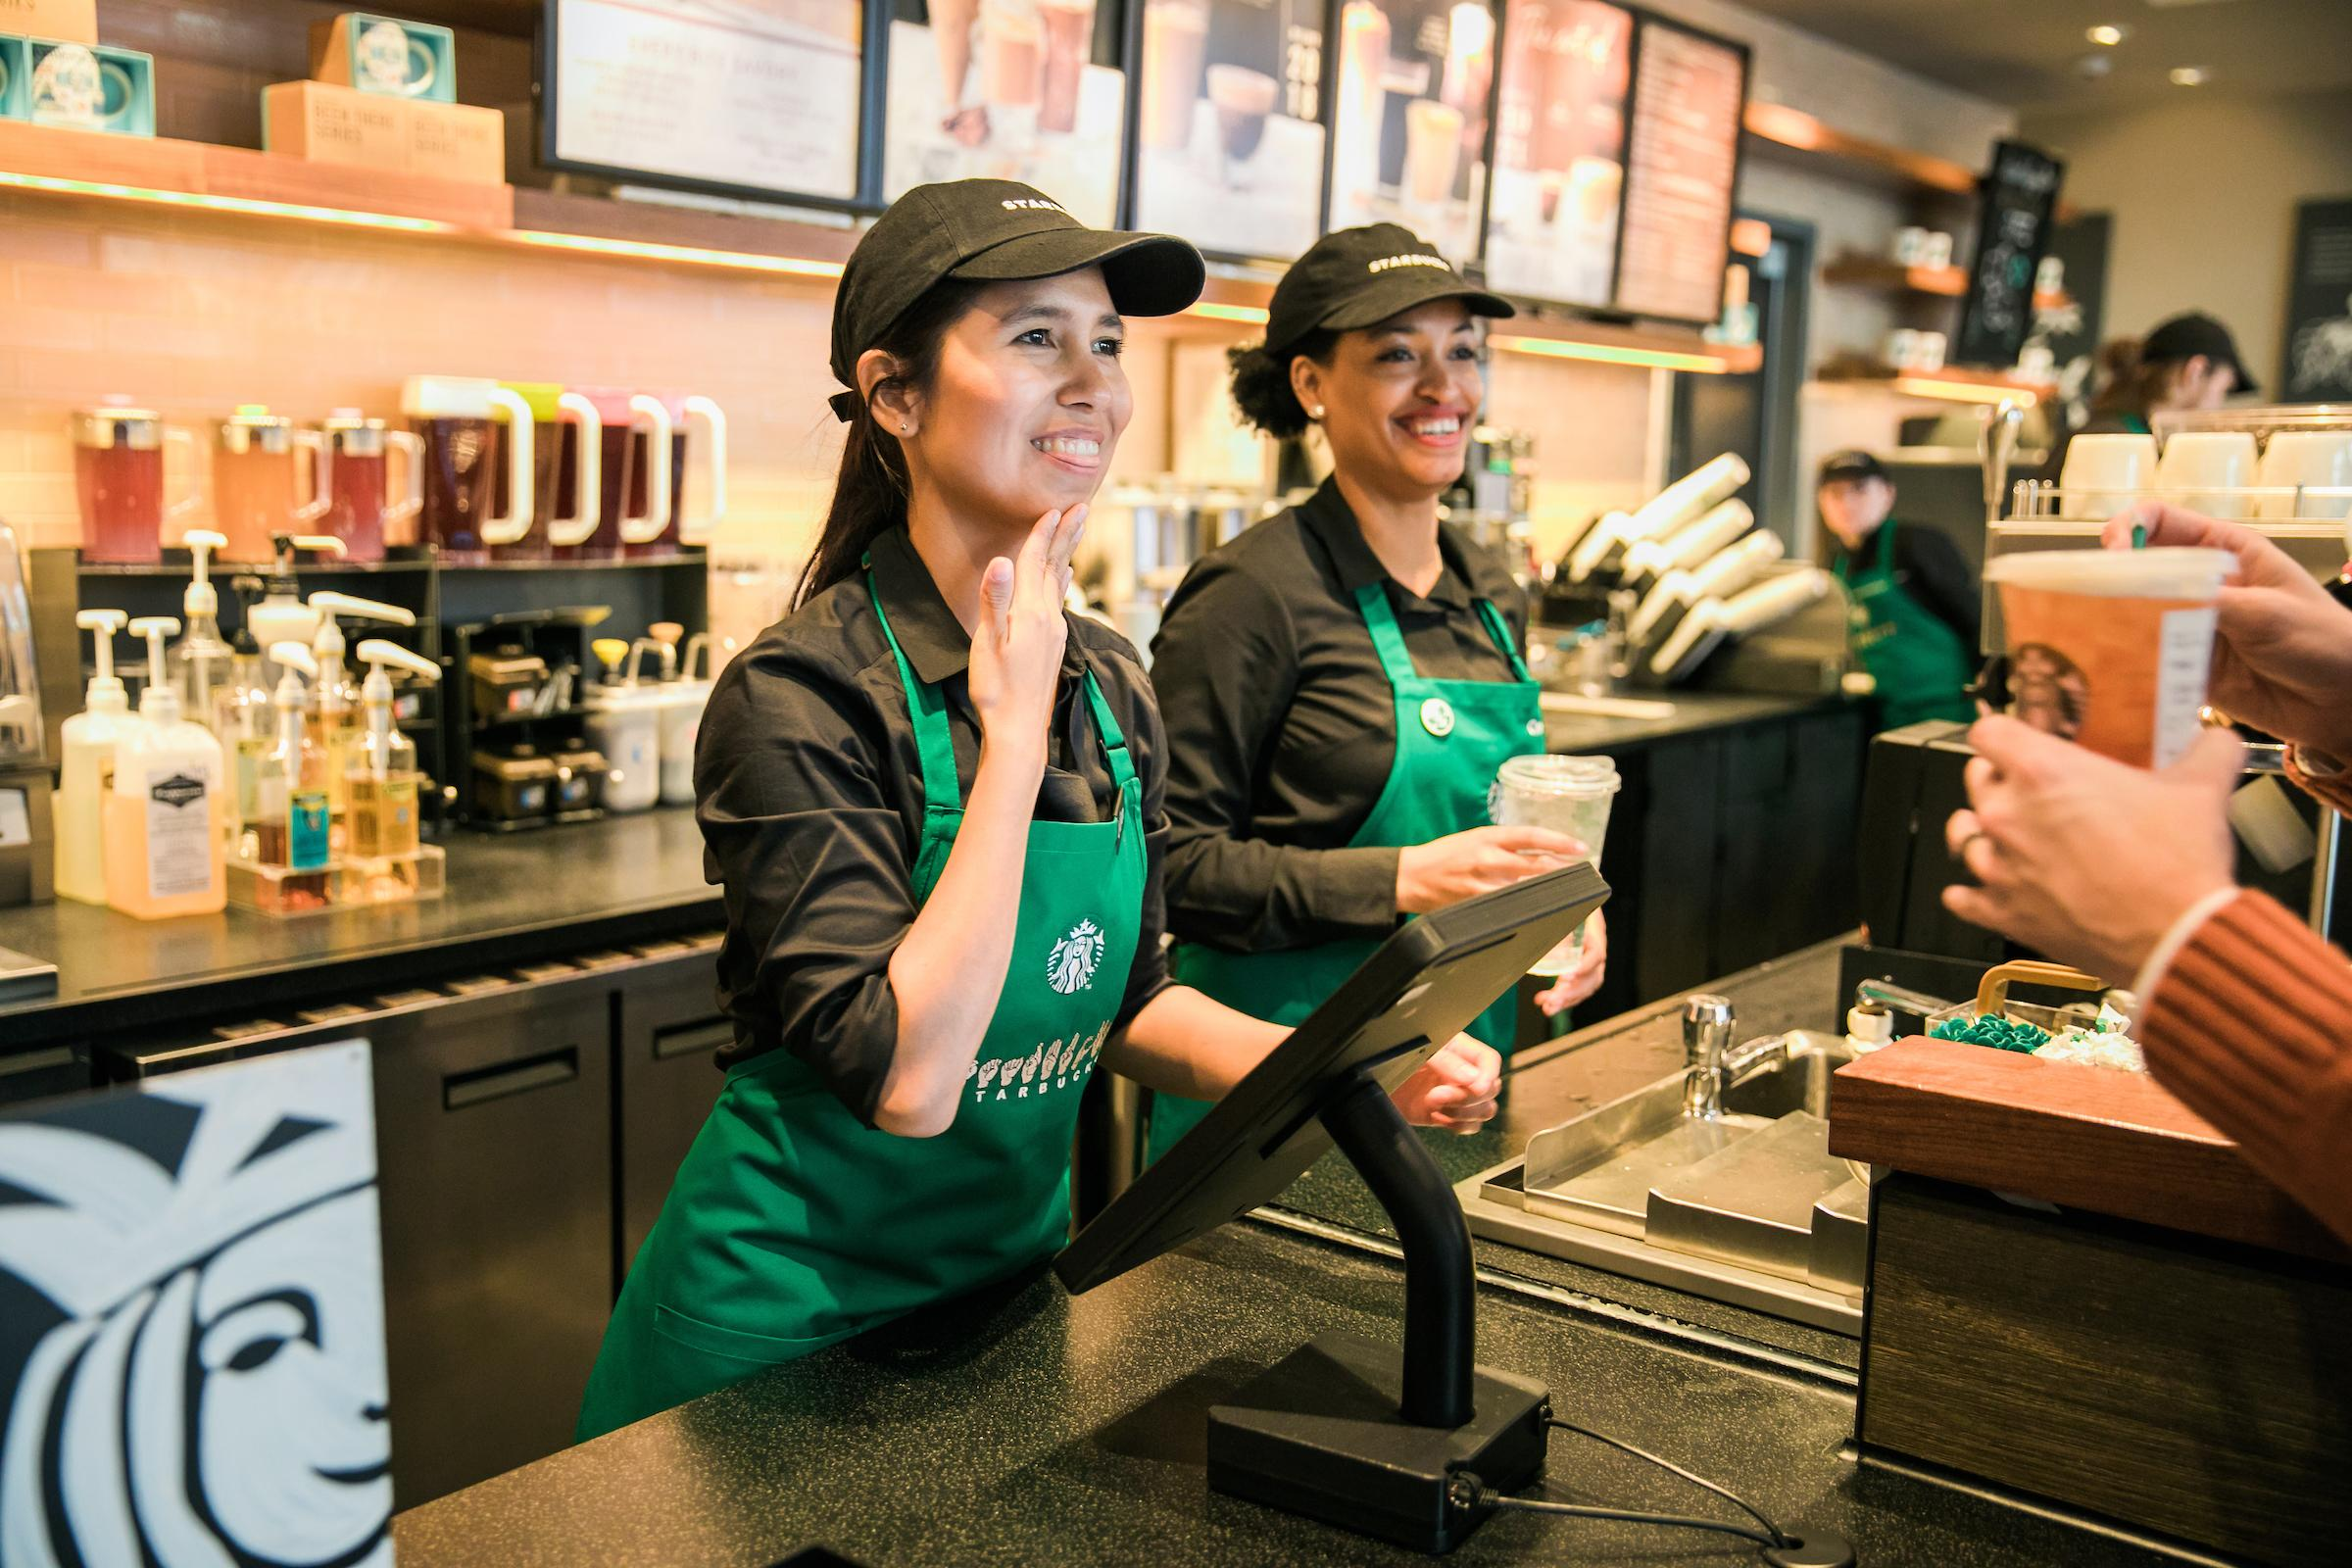 Although not every employee is Deaf, everyone who works at the new Starbucks is fluent in ASL.{ }(Image: Joshua Trujillo, Starbucks)